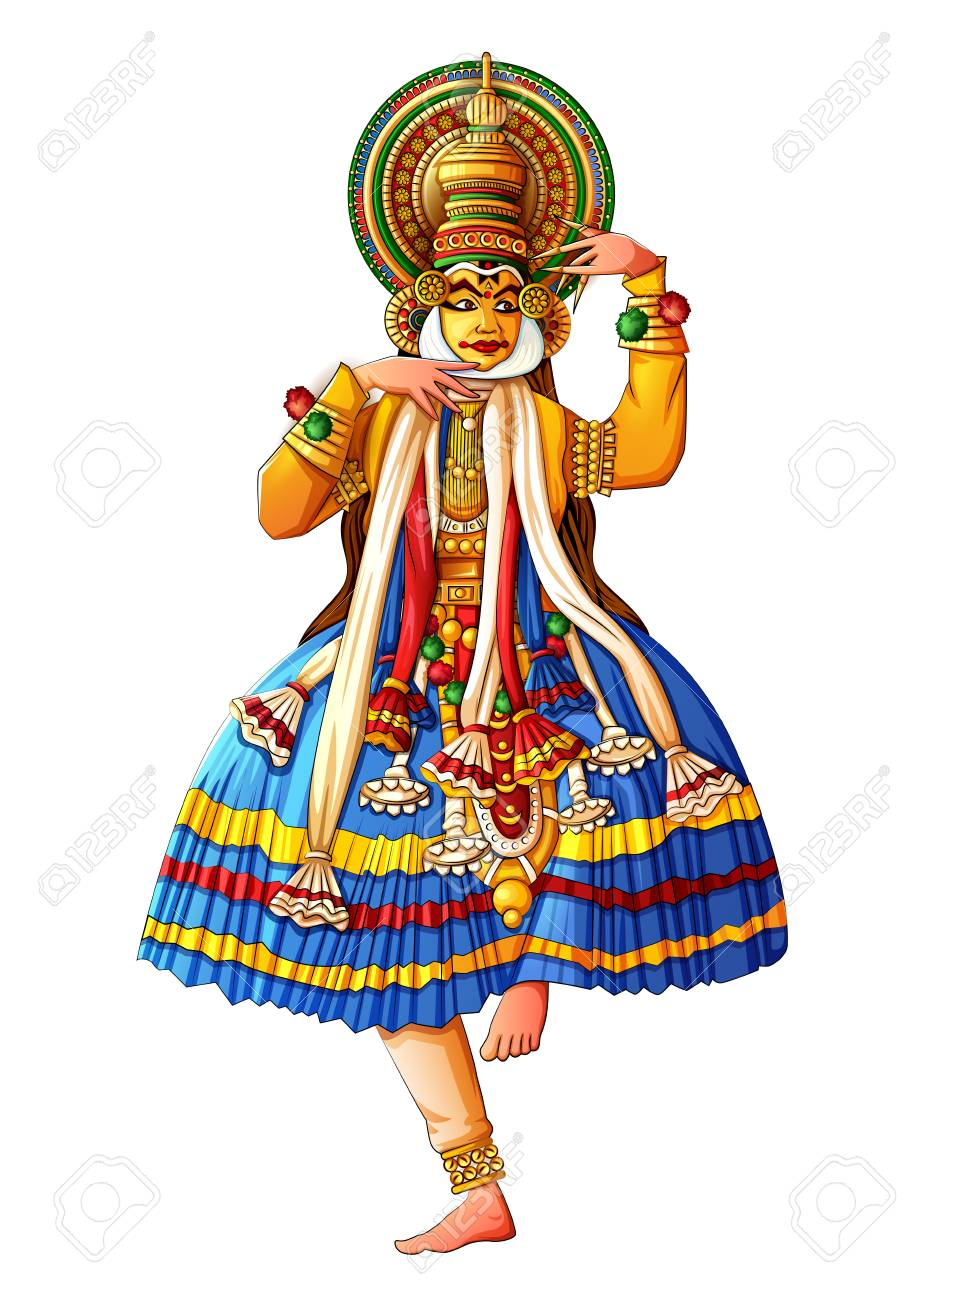 Man performing Kathakali classical dance of Kerala, India.